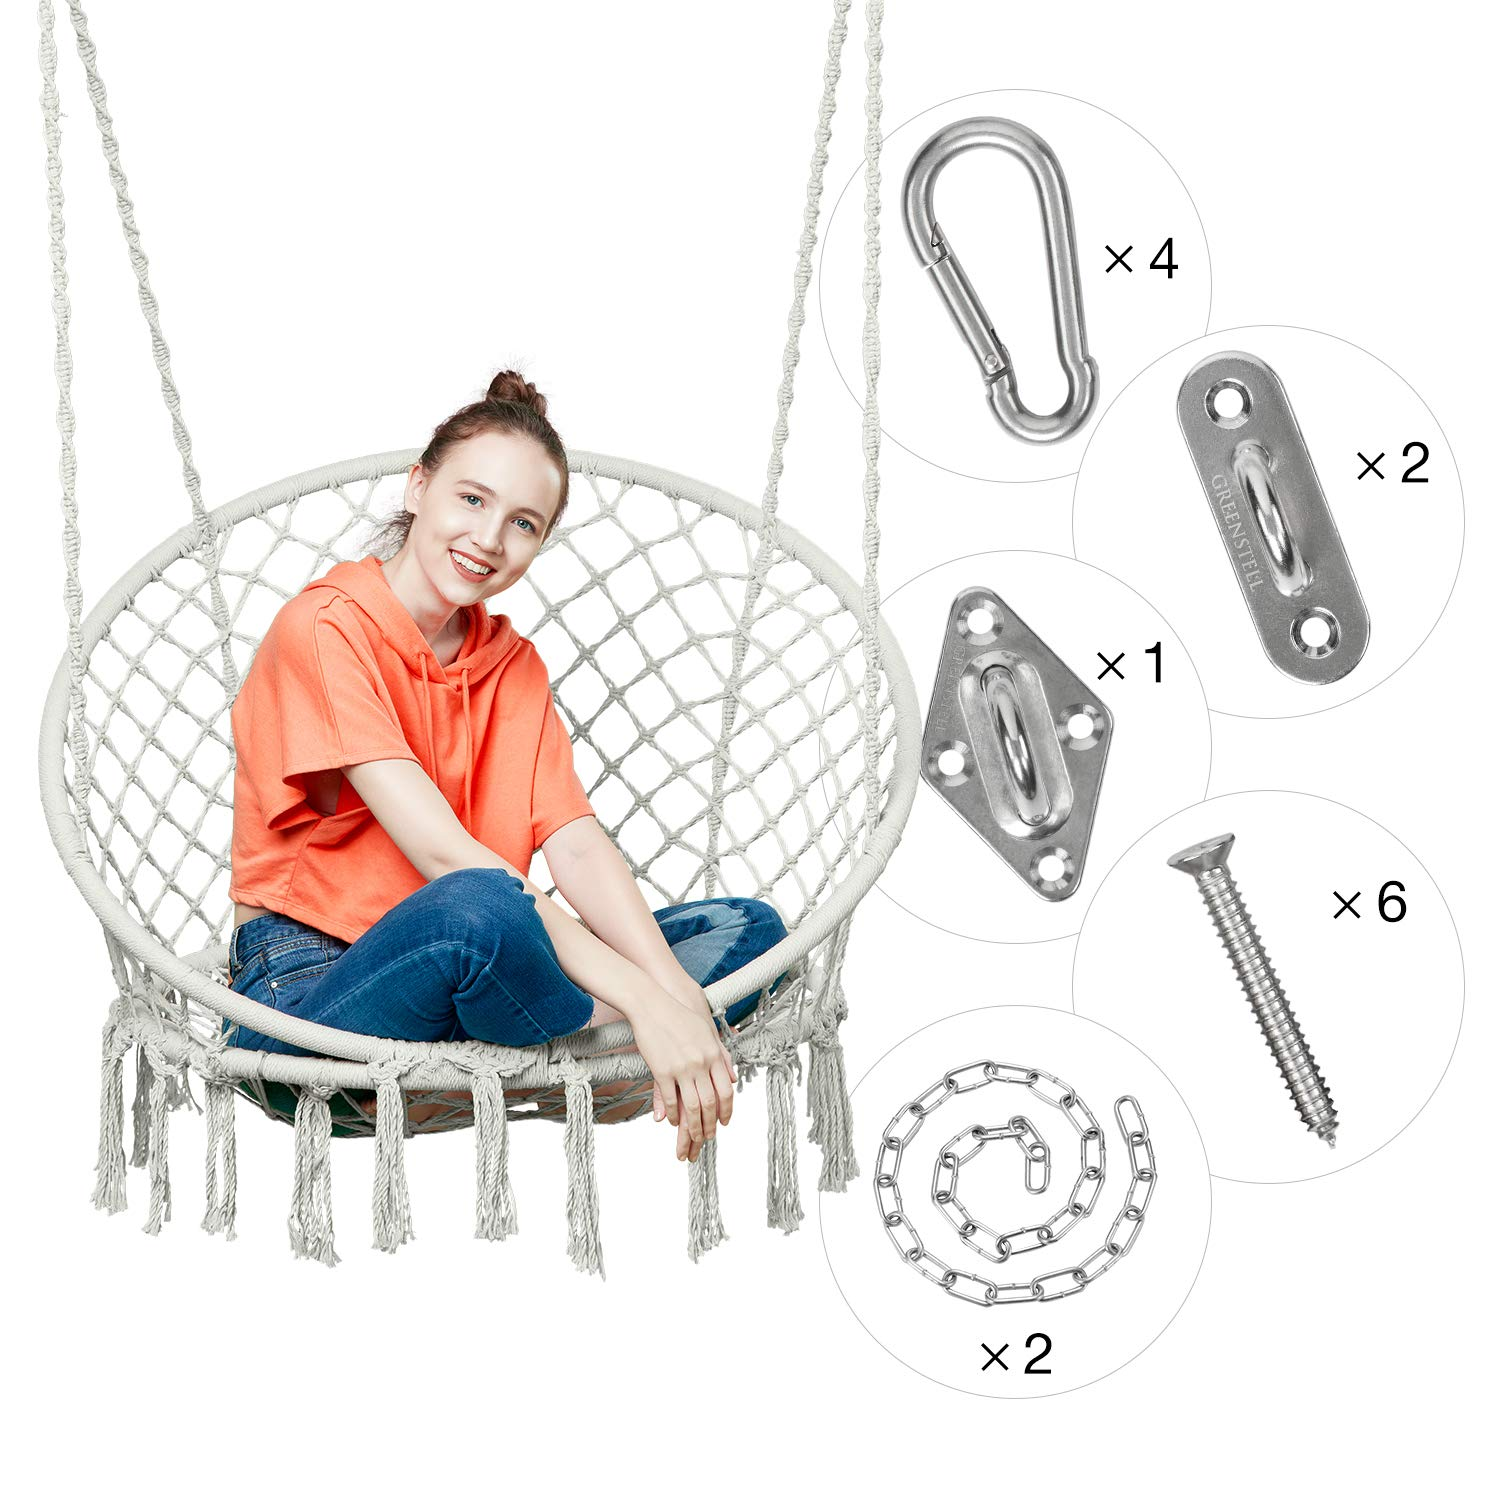 Greenstell Hammock Chair Macrame Swing with Hanging Kits, Hanging Cotton Rope Swing Chair, Comfortable Sturdy Hanging Chairs for Indoor,Outdoor,Bedroom,Patio,Yard, Garden,Home,290LBS Capacity (Beige)